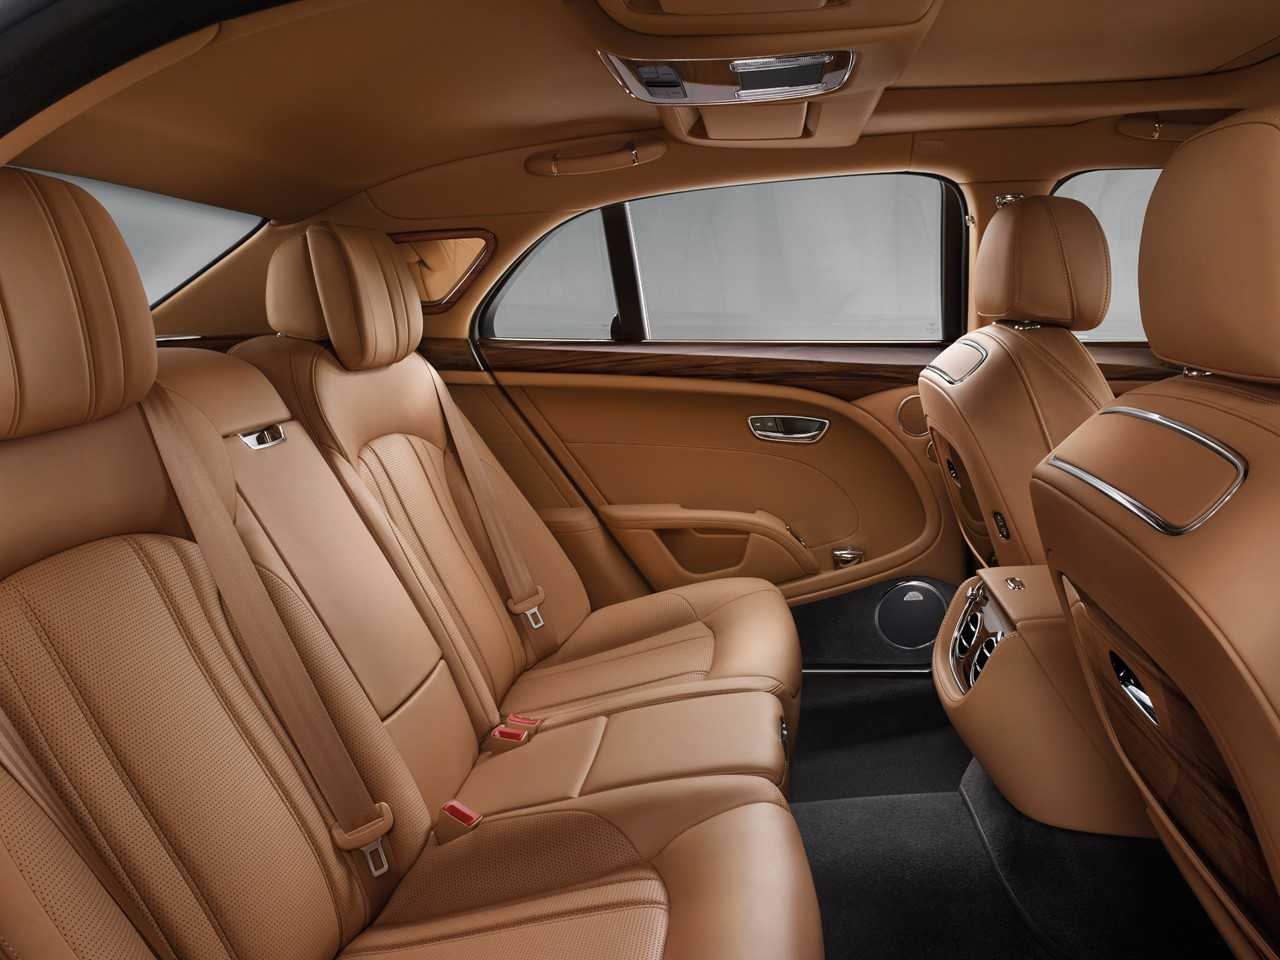 bentley-mulsanne-7e